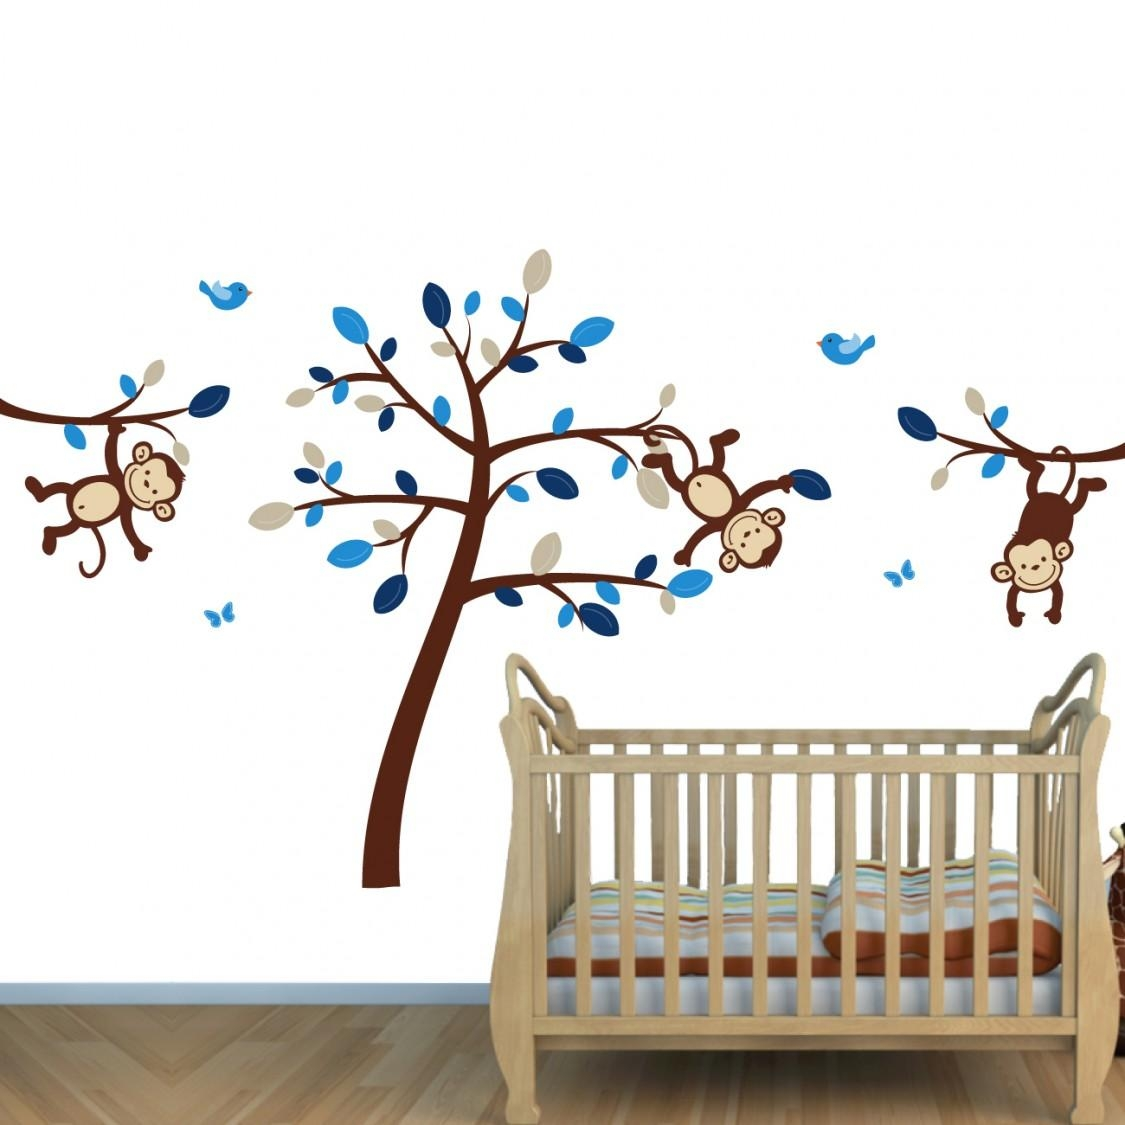 & Blue Jungle Murals For Kids & Monkey Wall Art For Boys Rooms Within Blue And Brown Wall Art (Image 1 of 20)